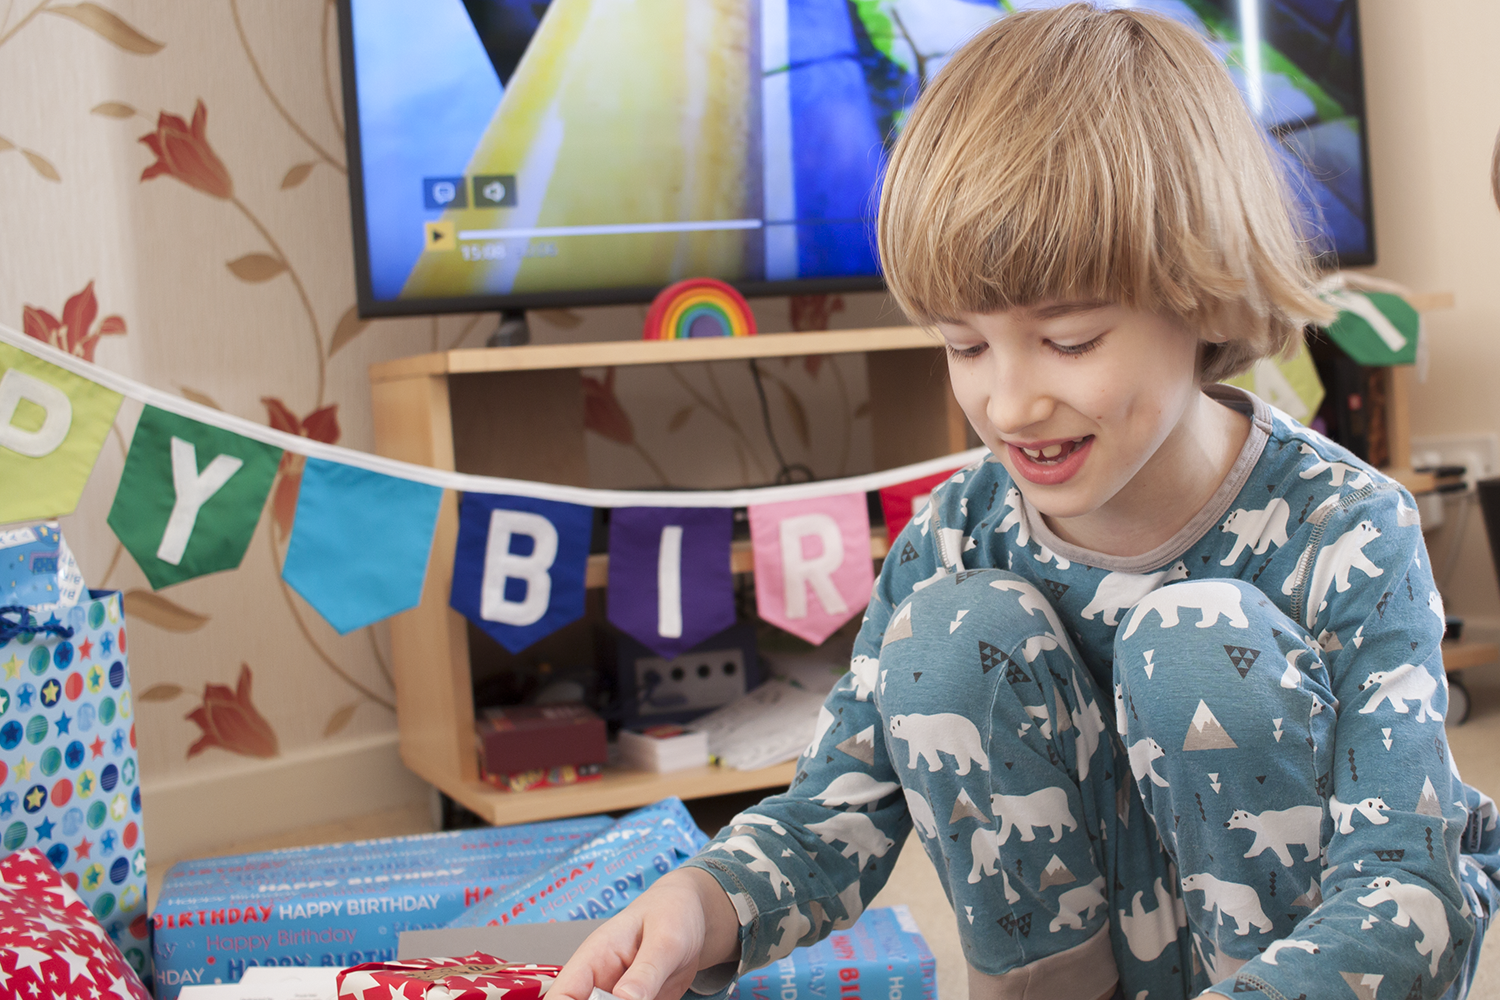 Toby opening his birthday presents